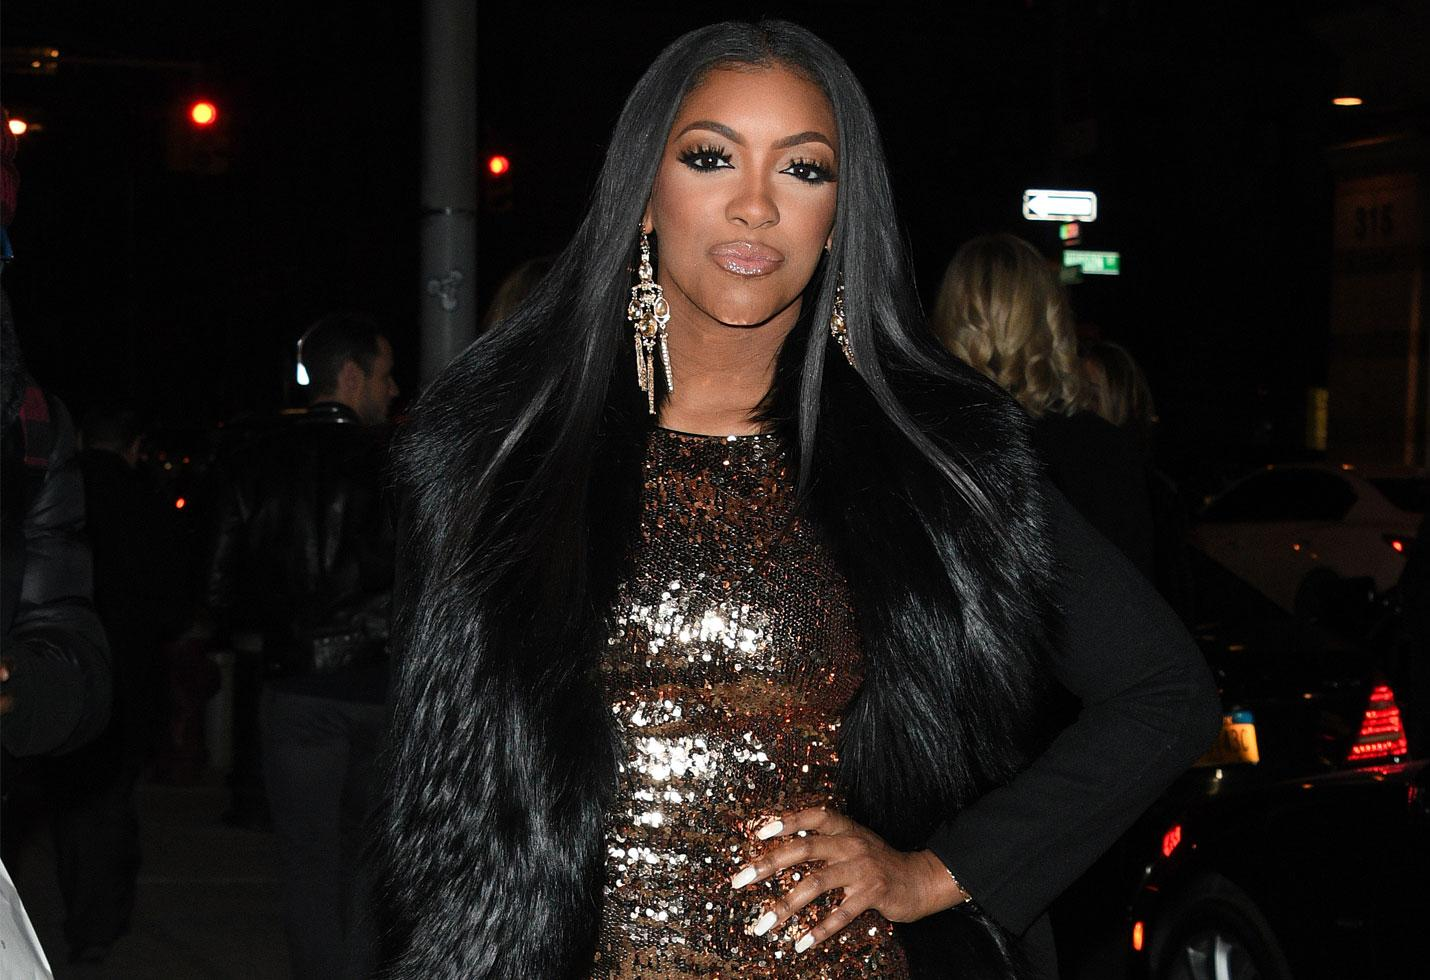 Porsha Williams Gushes Over Dennis McKinley's Restaurant - Check Out Her Video And Pics